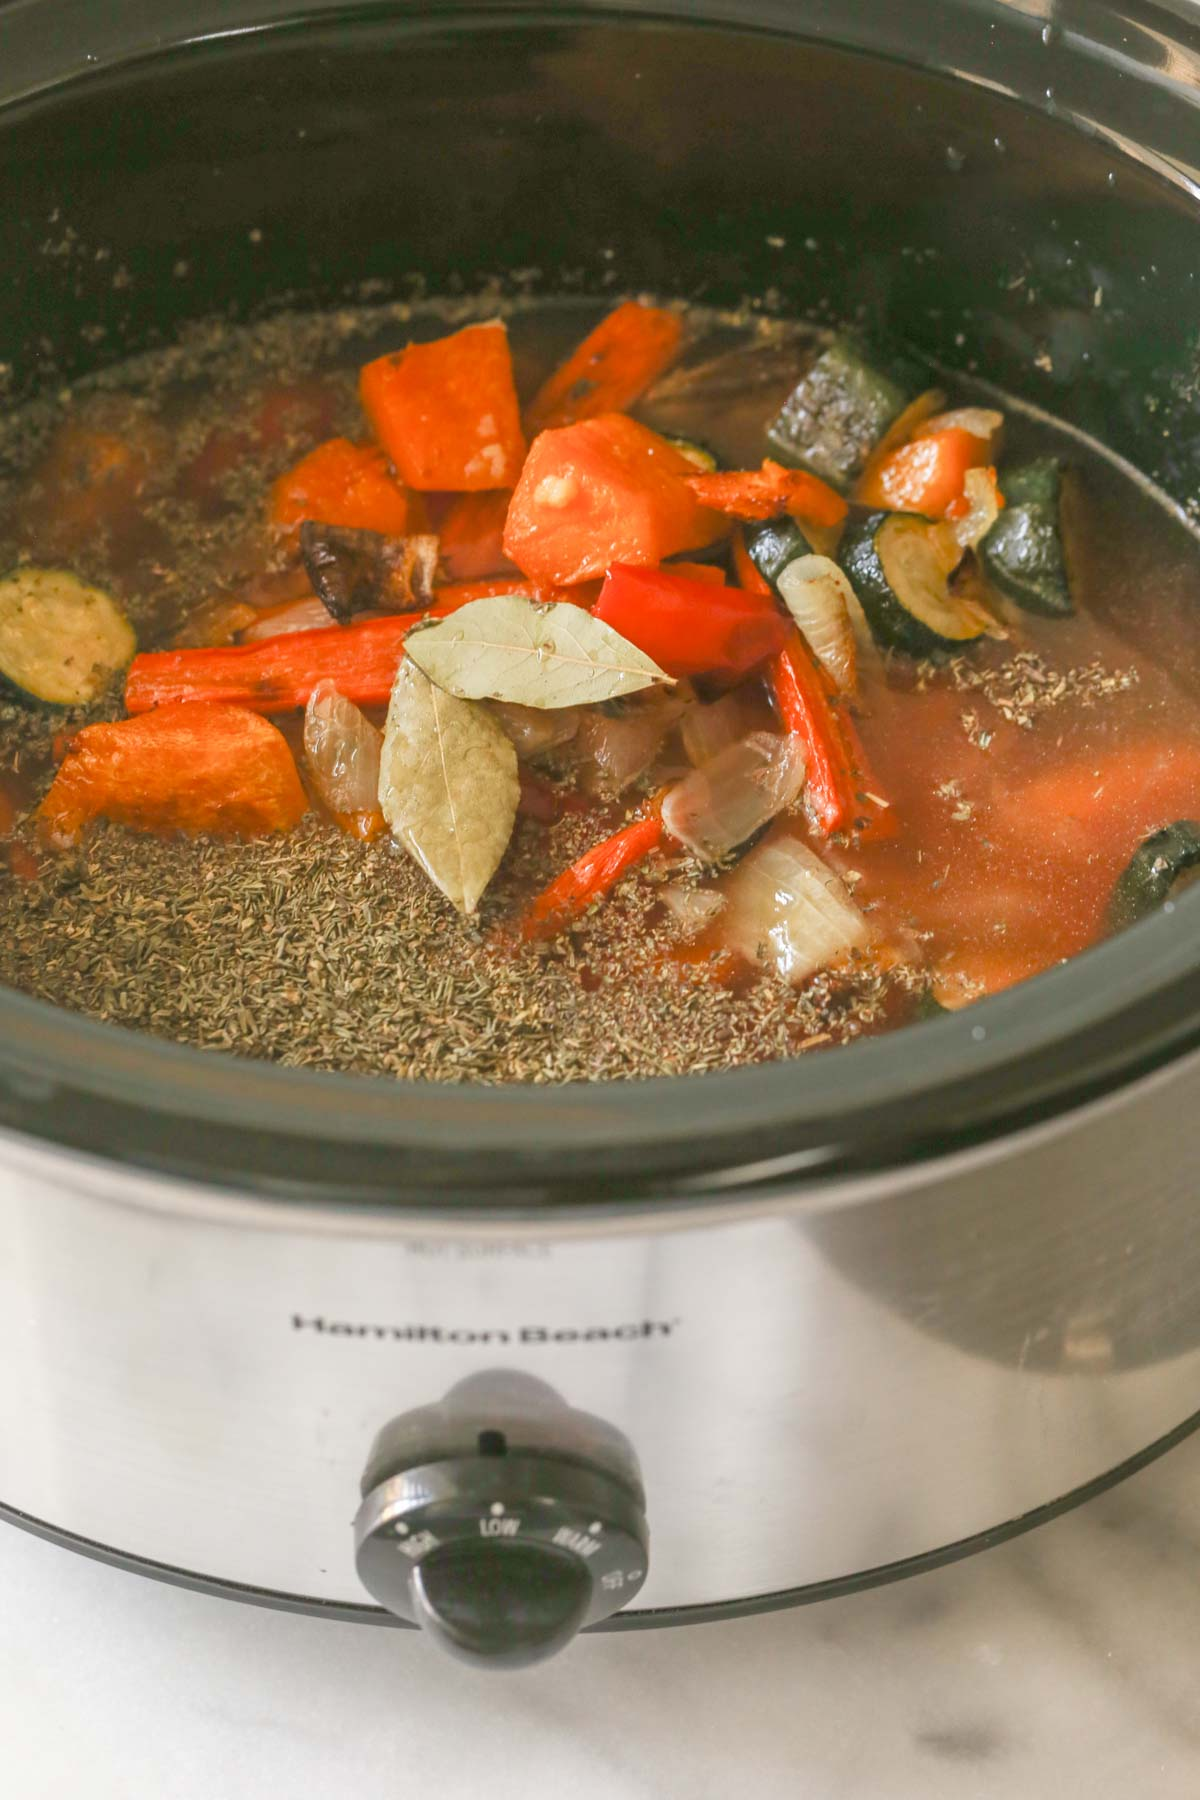 A crockpot with all the ingredients for the Roasted Vegetable Soup in it.